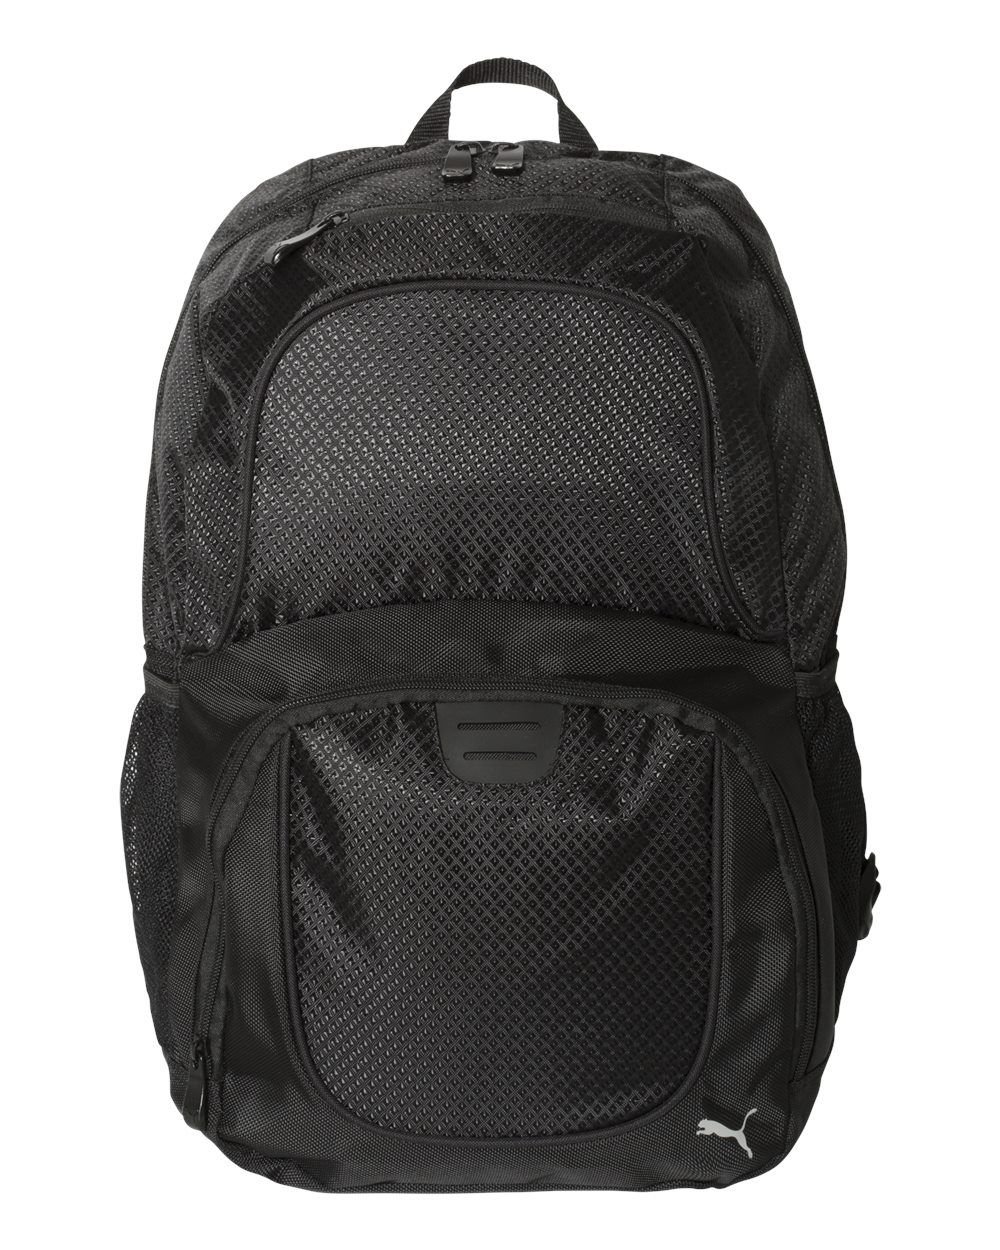 Puma - 25L Backpack - PSC1028 | Clothing Shop Online | Puma - 25L Backpack - PSC1028 - Black/ Black - One Size